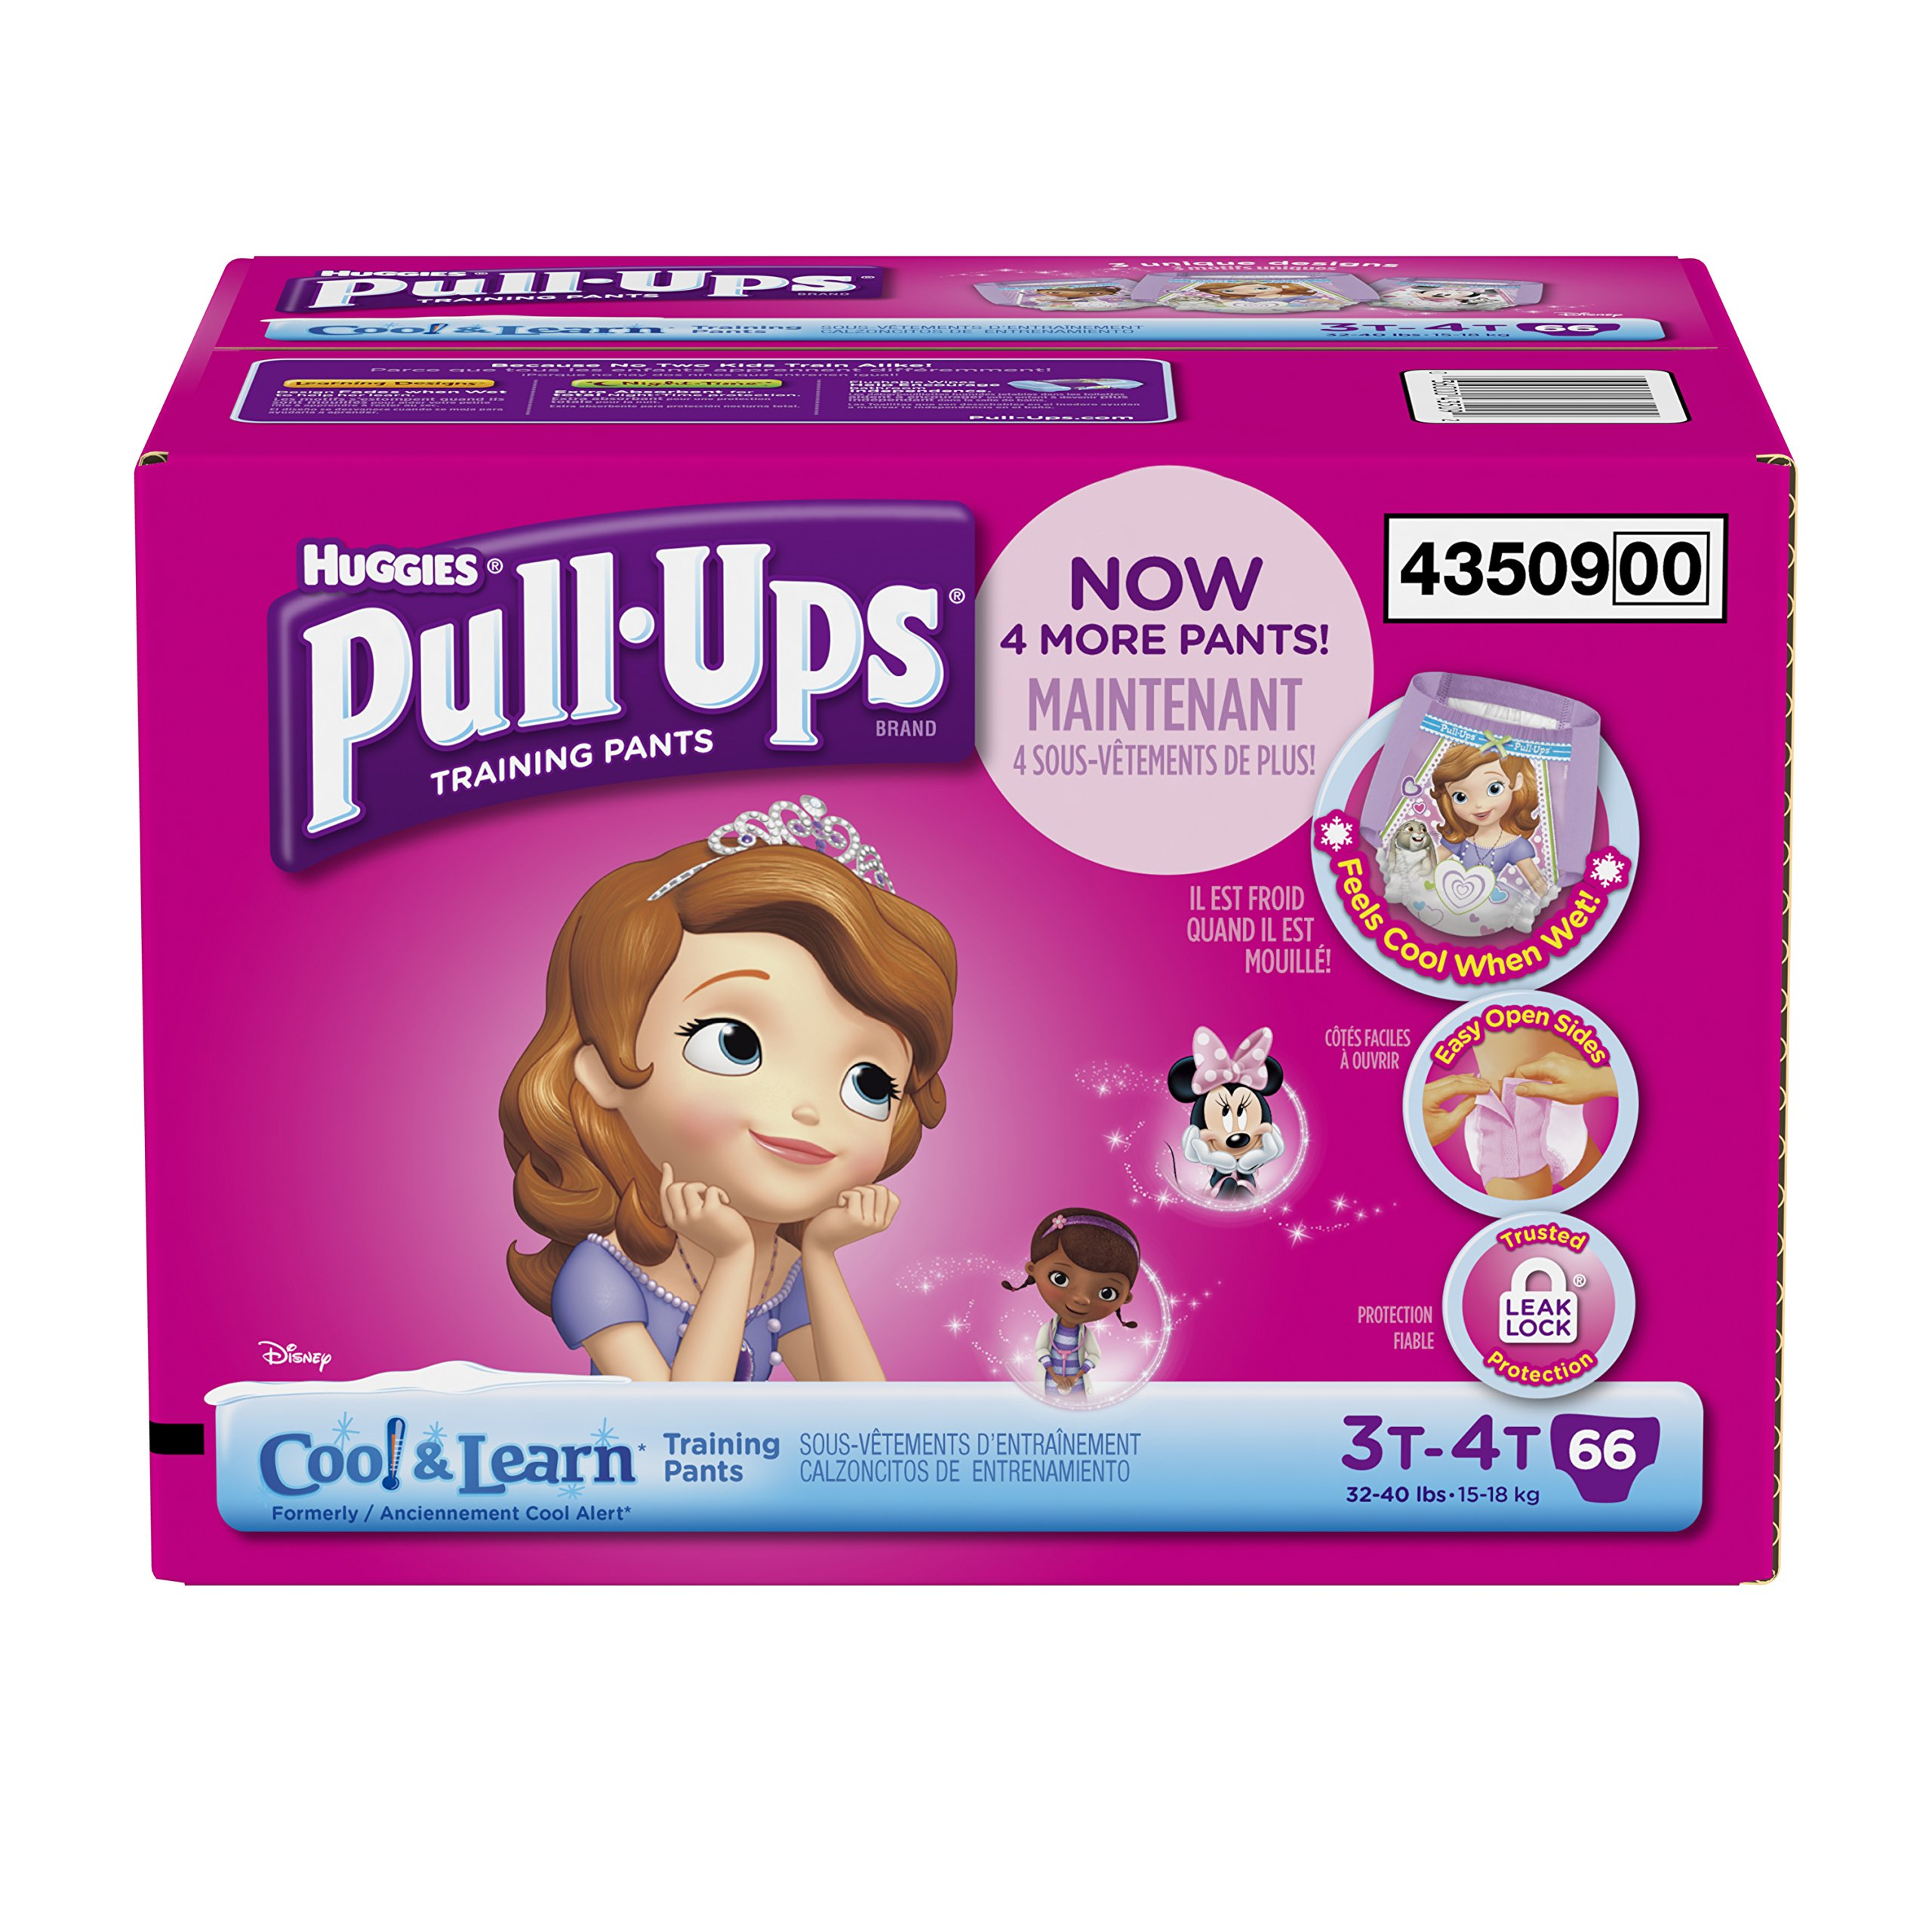 Huggies Pull-Ups Training Pants with Cool and Learn for Girls, Size 3T-4T, 66 Count